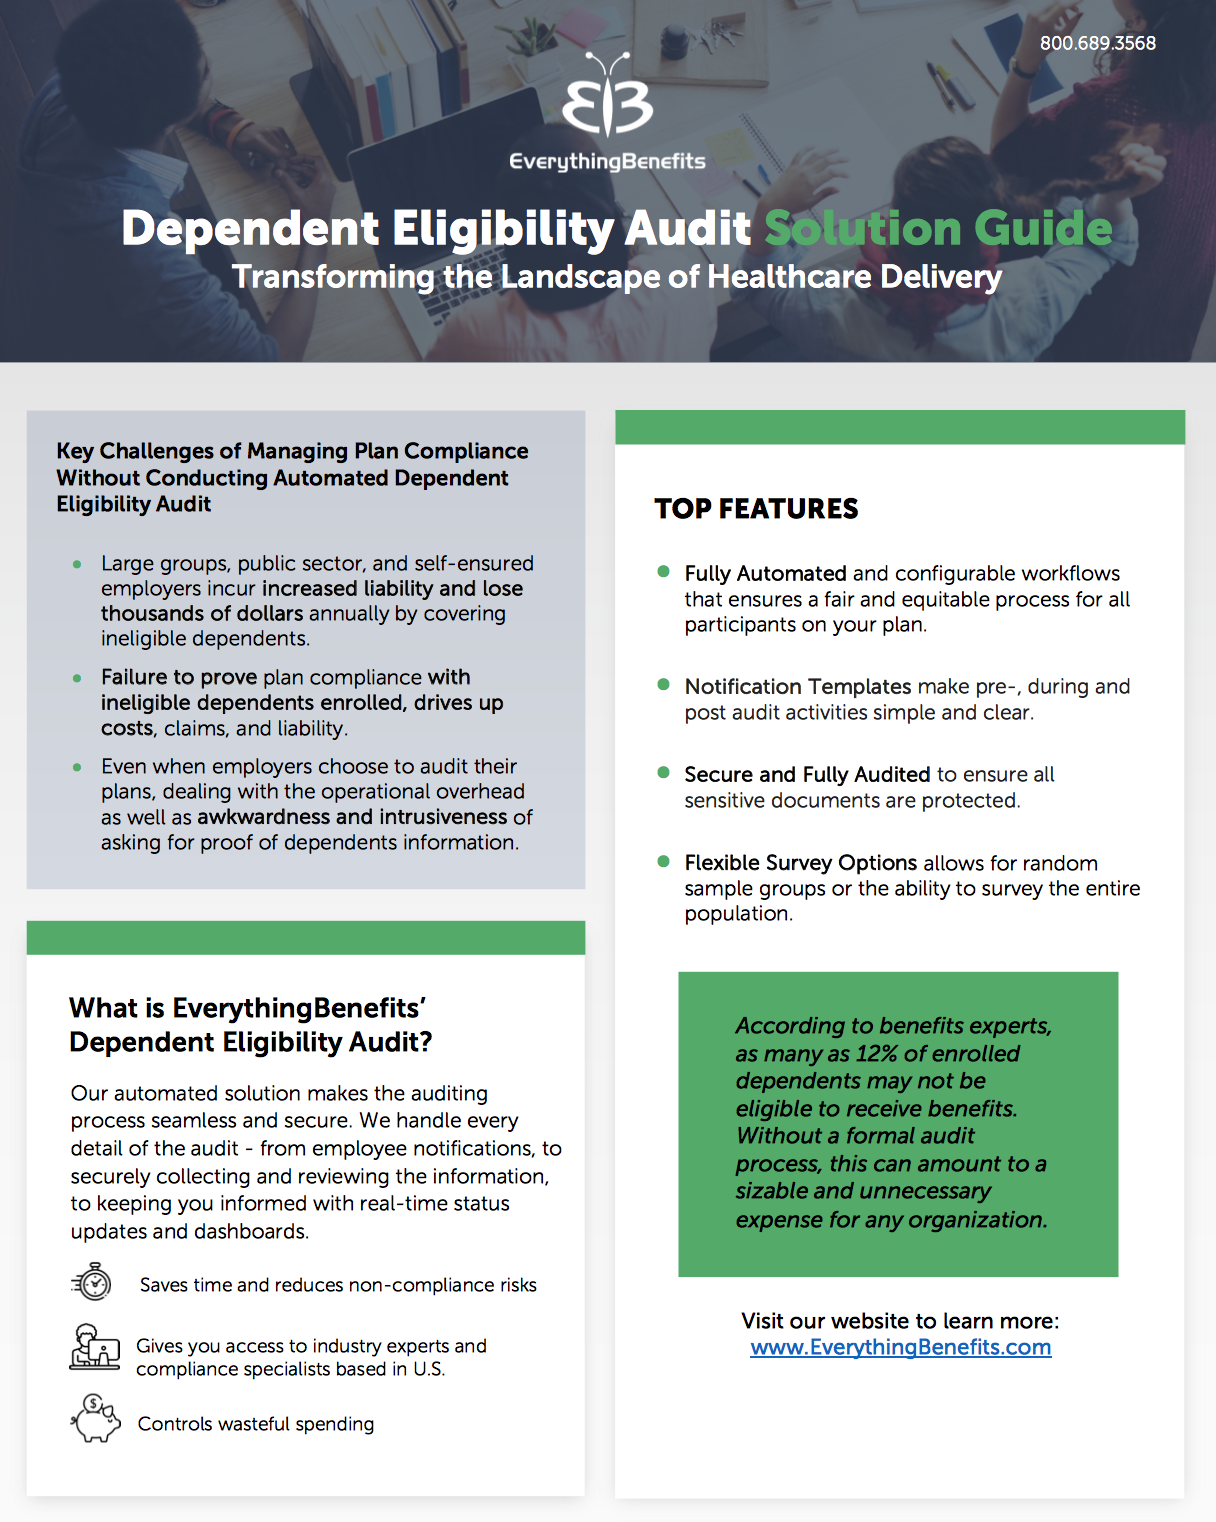 Dependent Eligibility Audit Solution Guide